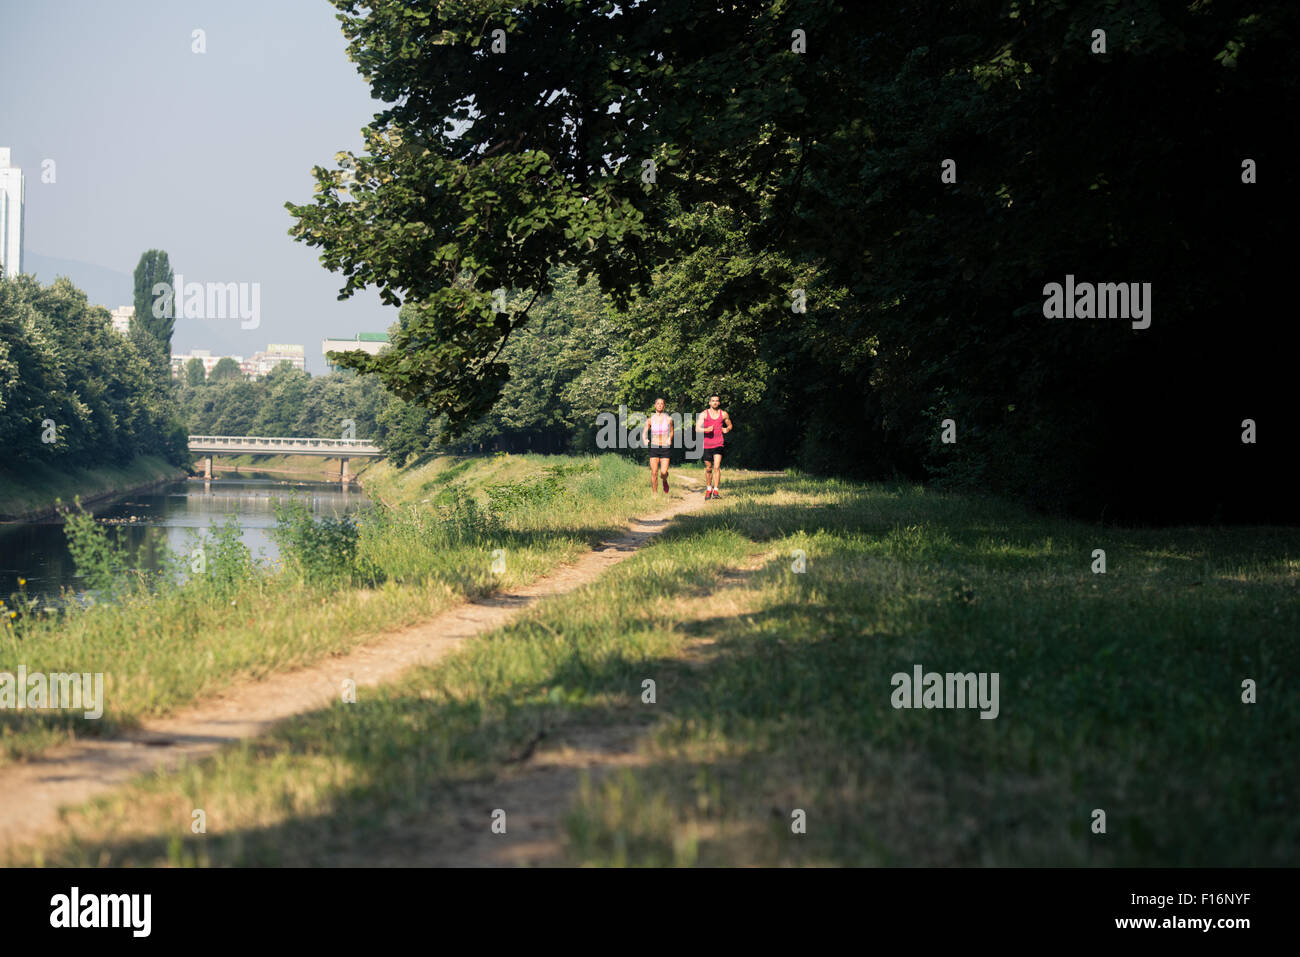 Young Couple Running In Wooded Forest Area - Training And Exercising For Trail Run Marathon Endurance - Fitness - Stock Image